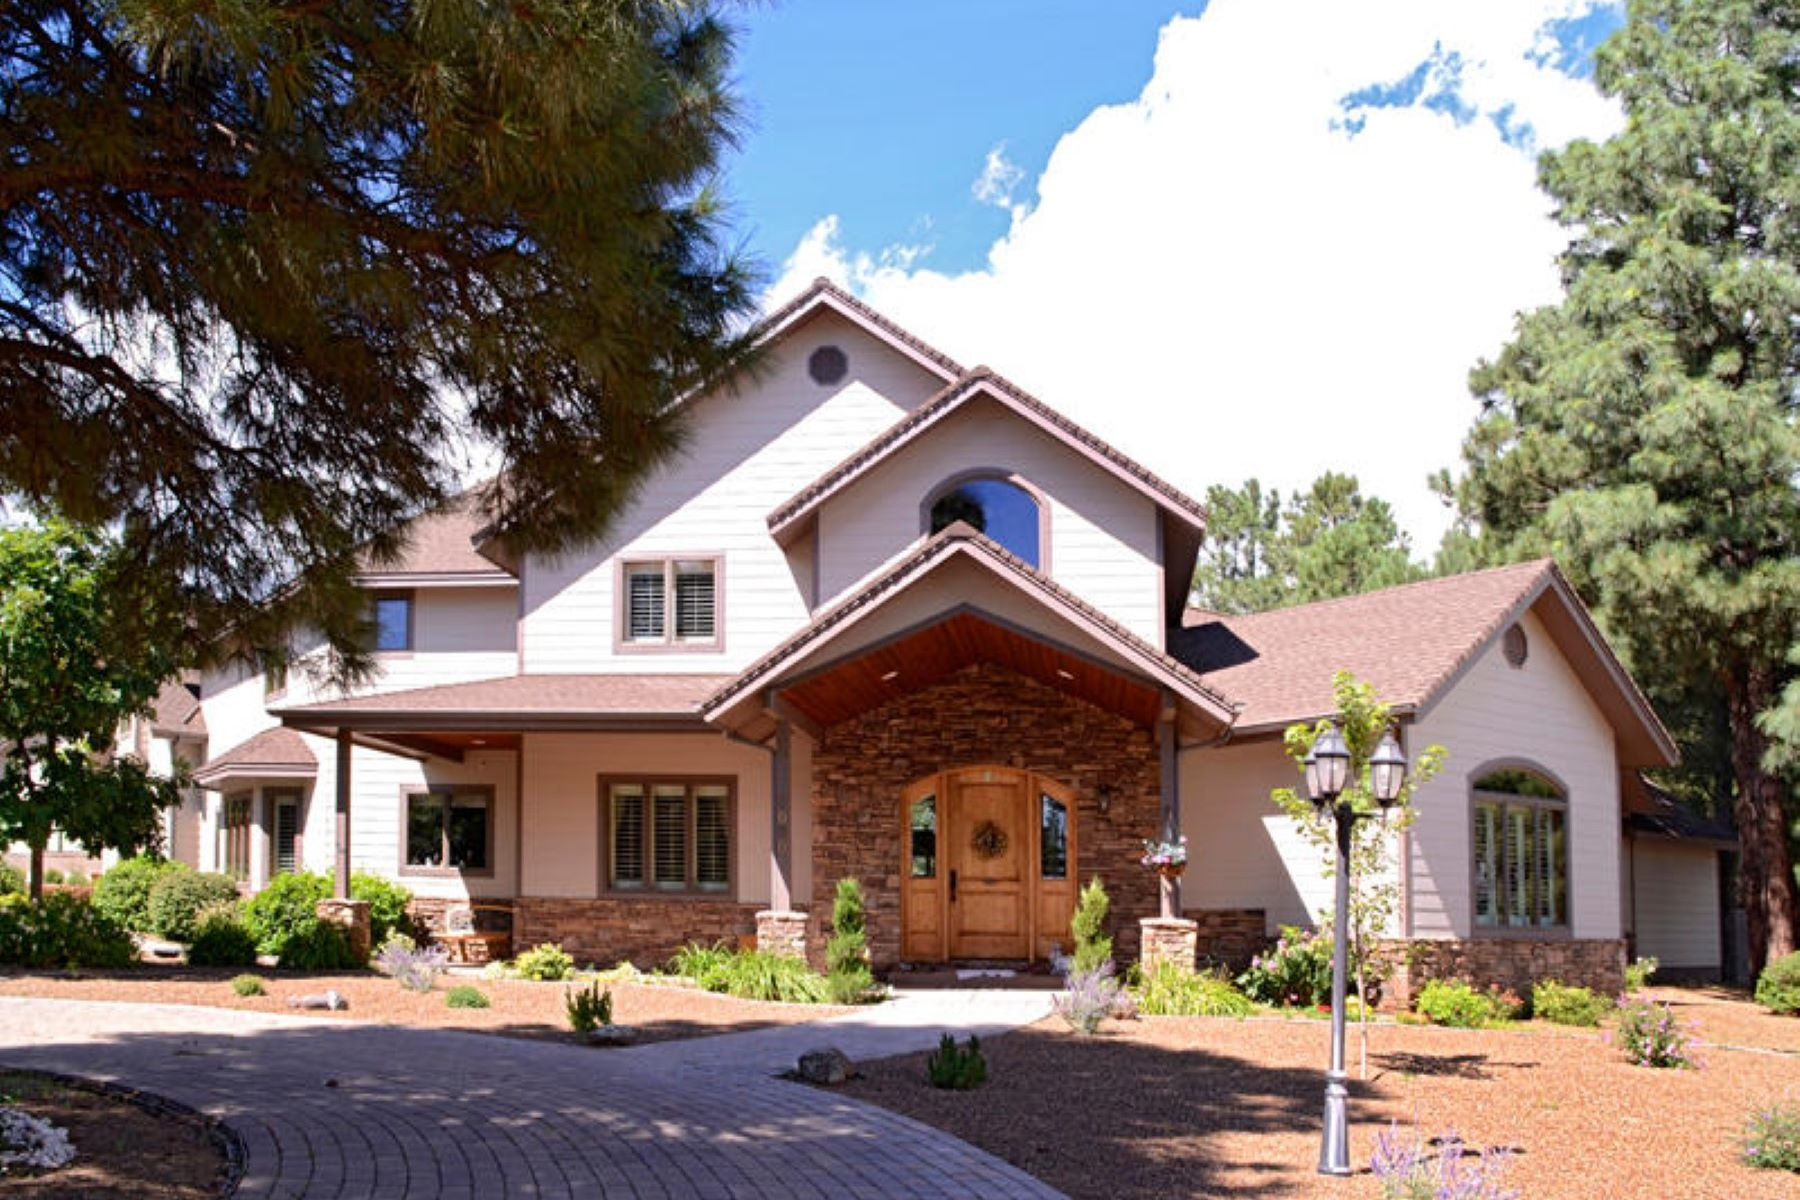 Single Family Home for Sale at Luxury Forest Home 7050 N Oakwood Pines DR, Flagstaff, Arizona, 86004 United States